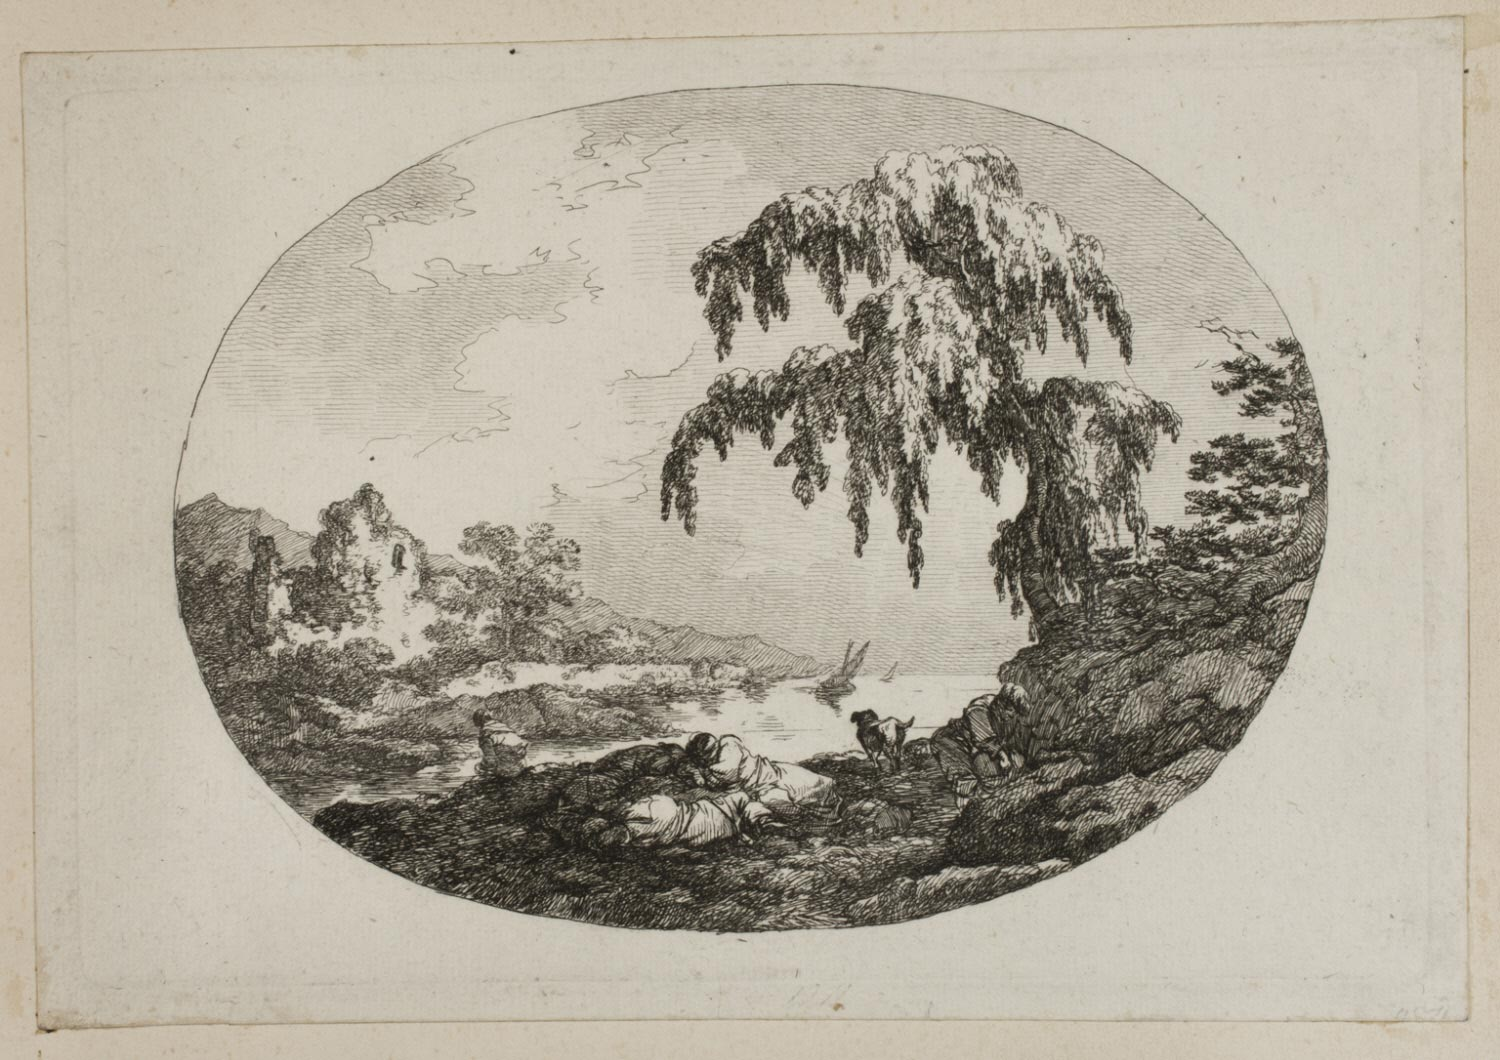 Landscape in Oval with Travelers Sleeping